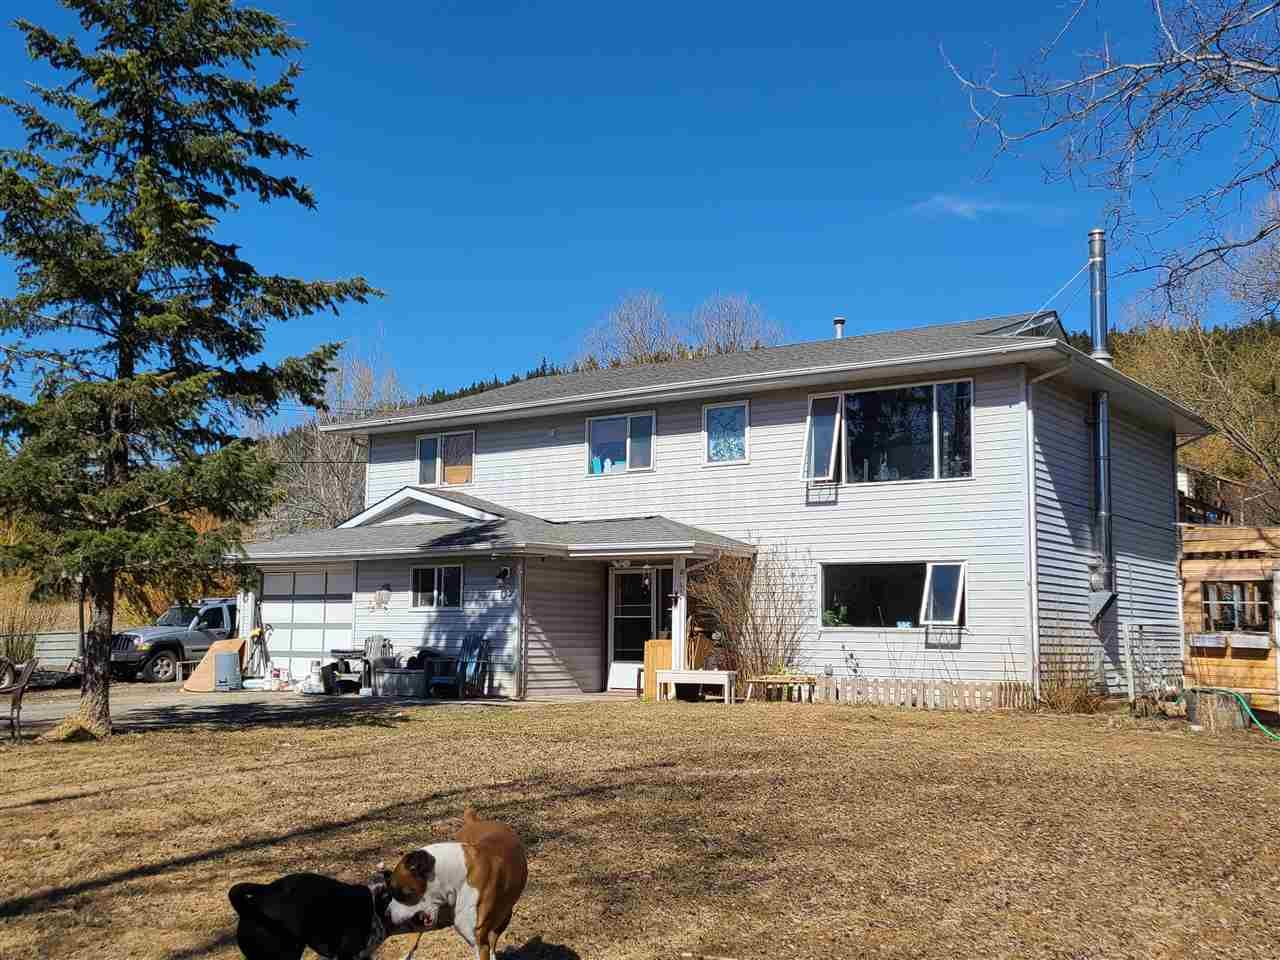 Main Photo: 6088 REITA Crescent in 100 Mile House: 100 Mile House - Rural House for sale (100 Mile House (Zone 10))  : MLS®# R2569180